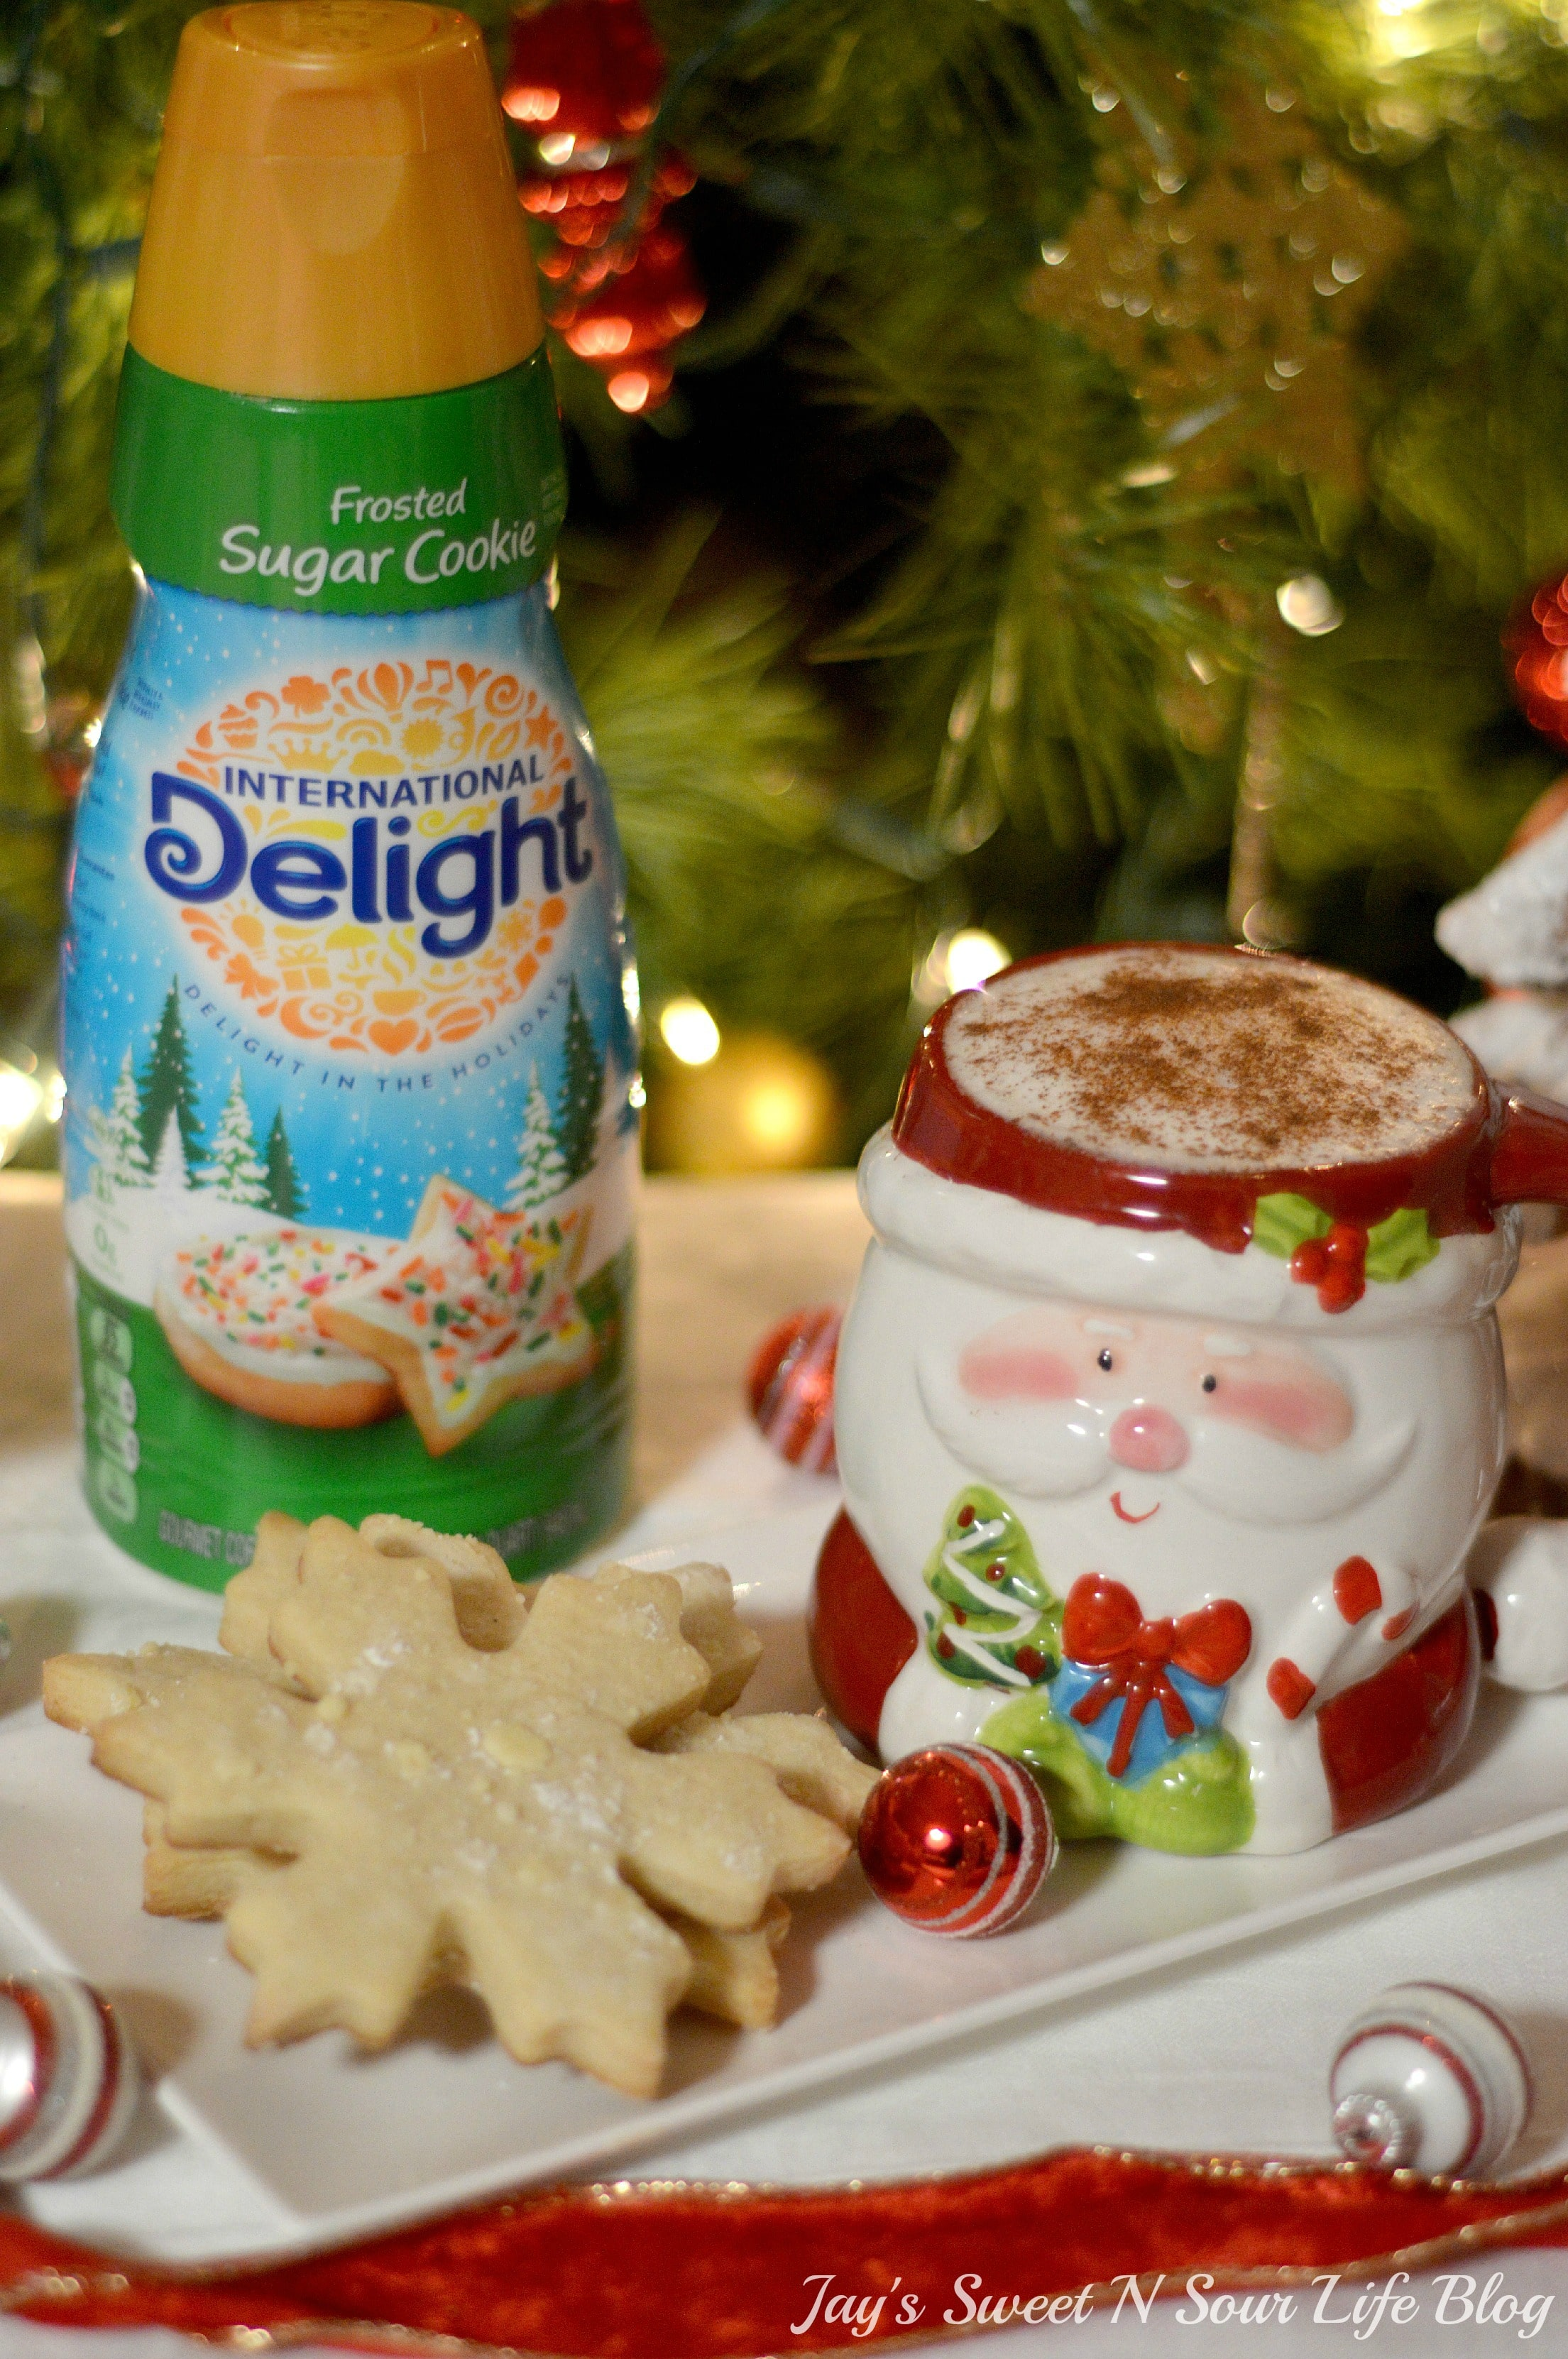 Santa's milk and cookies. Treat Santa to his very own Santa's Milk and Cookies Latte, paired with a buttery snowflake cookie perfect for dipping. No milk frother needed, this delicious sugar cookie flavored latte and snowflake cookies make the perfect holiday treat duo.